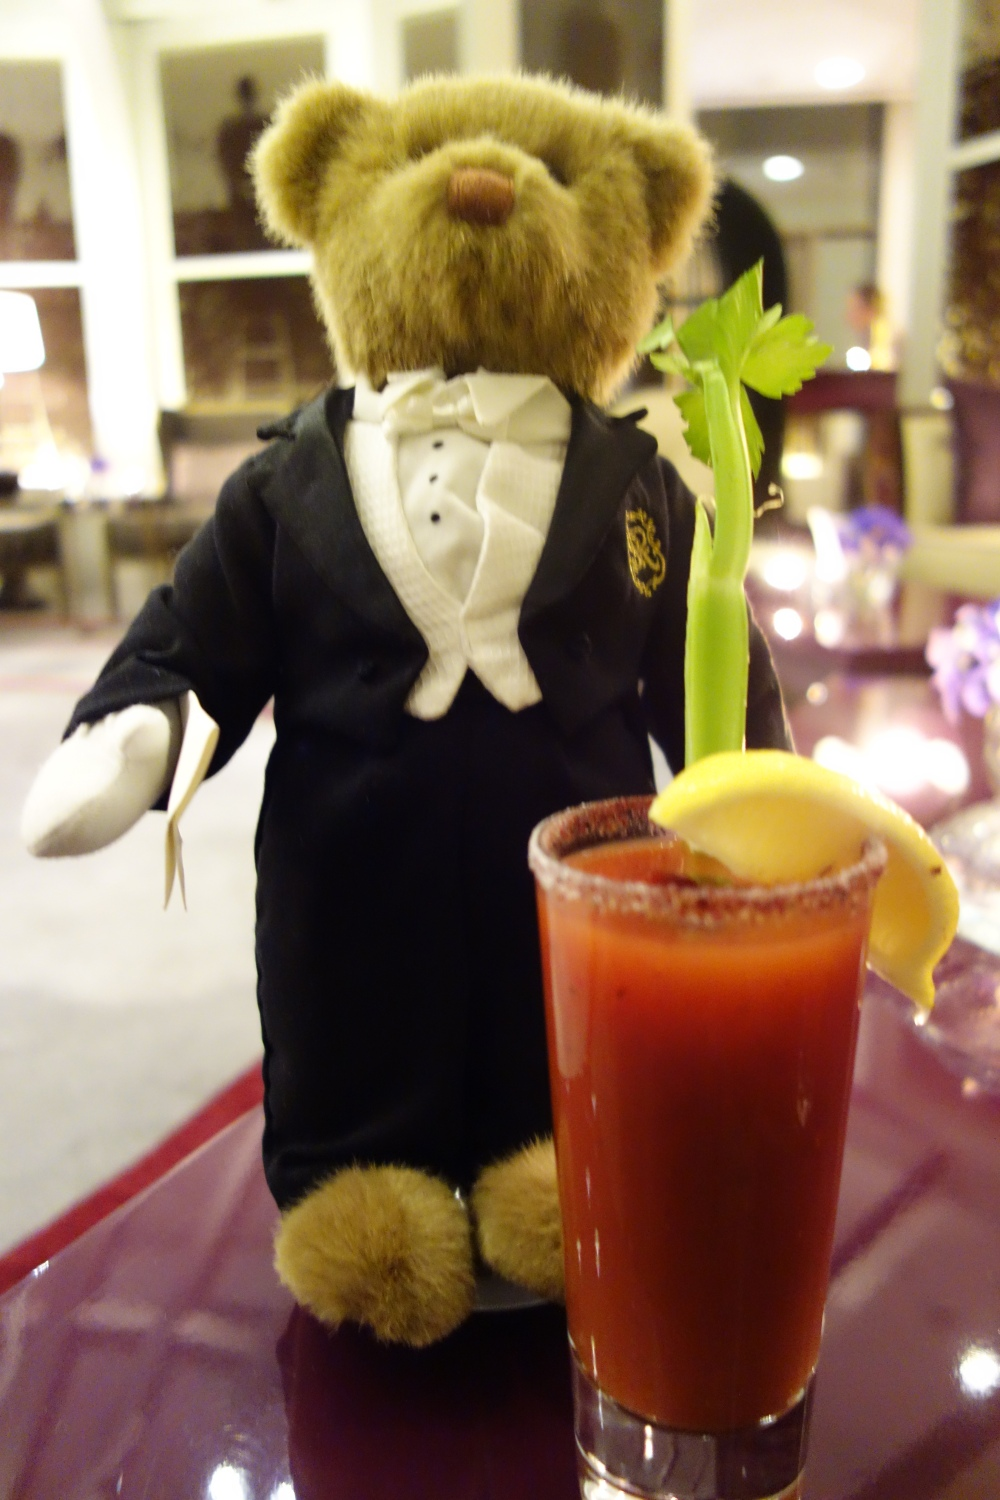 Best dressed man in the house...the St Regis Bear just arrived from NYC was the guest of honor